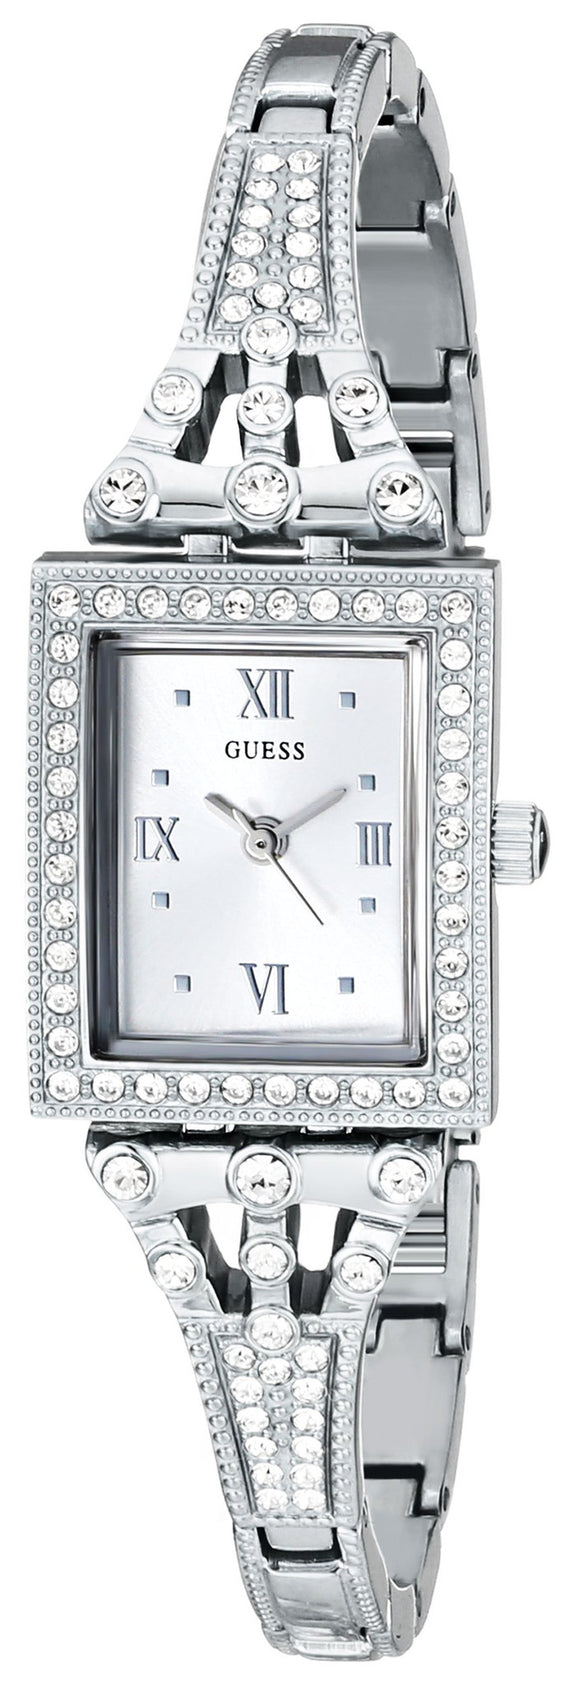 Guess Women's U0430L1 Silver-Tone Jewelry-Inspired Watch Womens Watches Guess